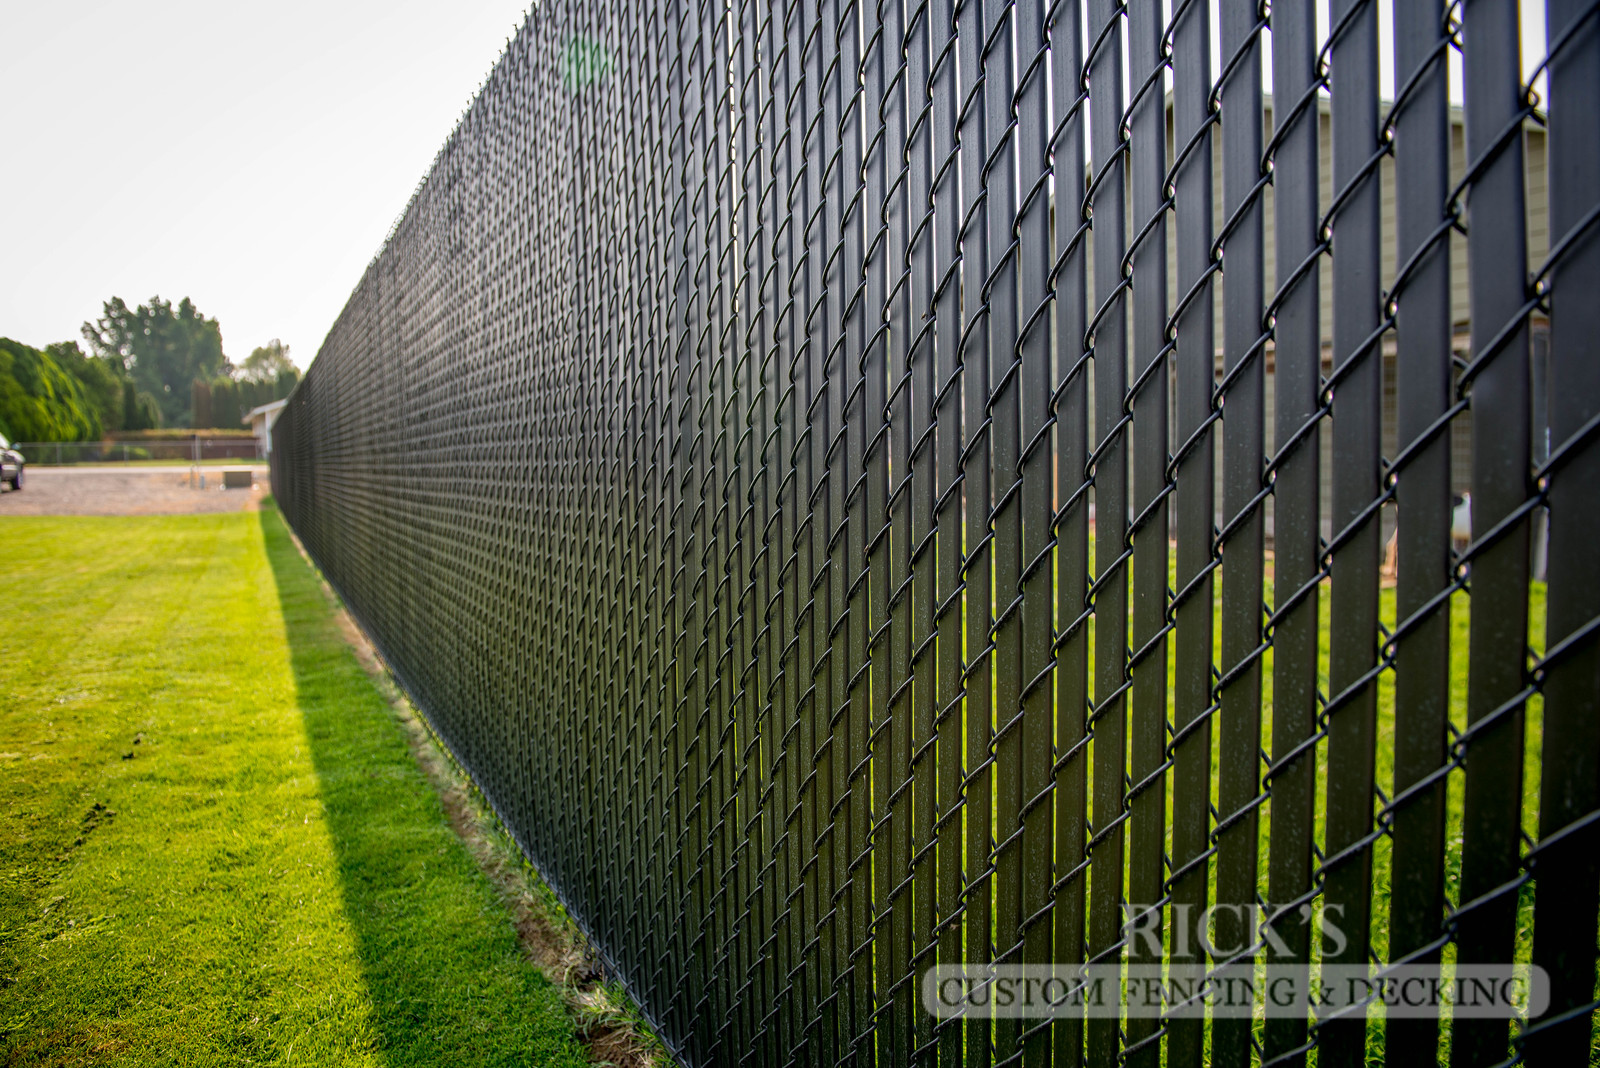 4109 - Black Chain Link Fencing with Black Slats